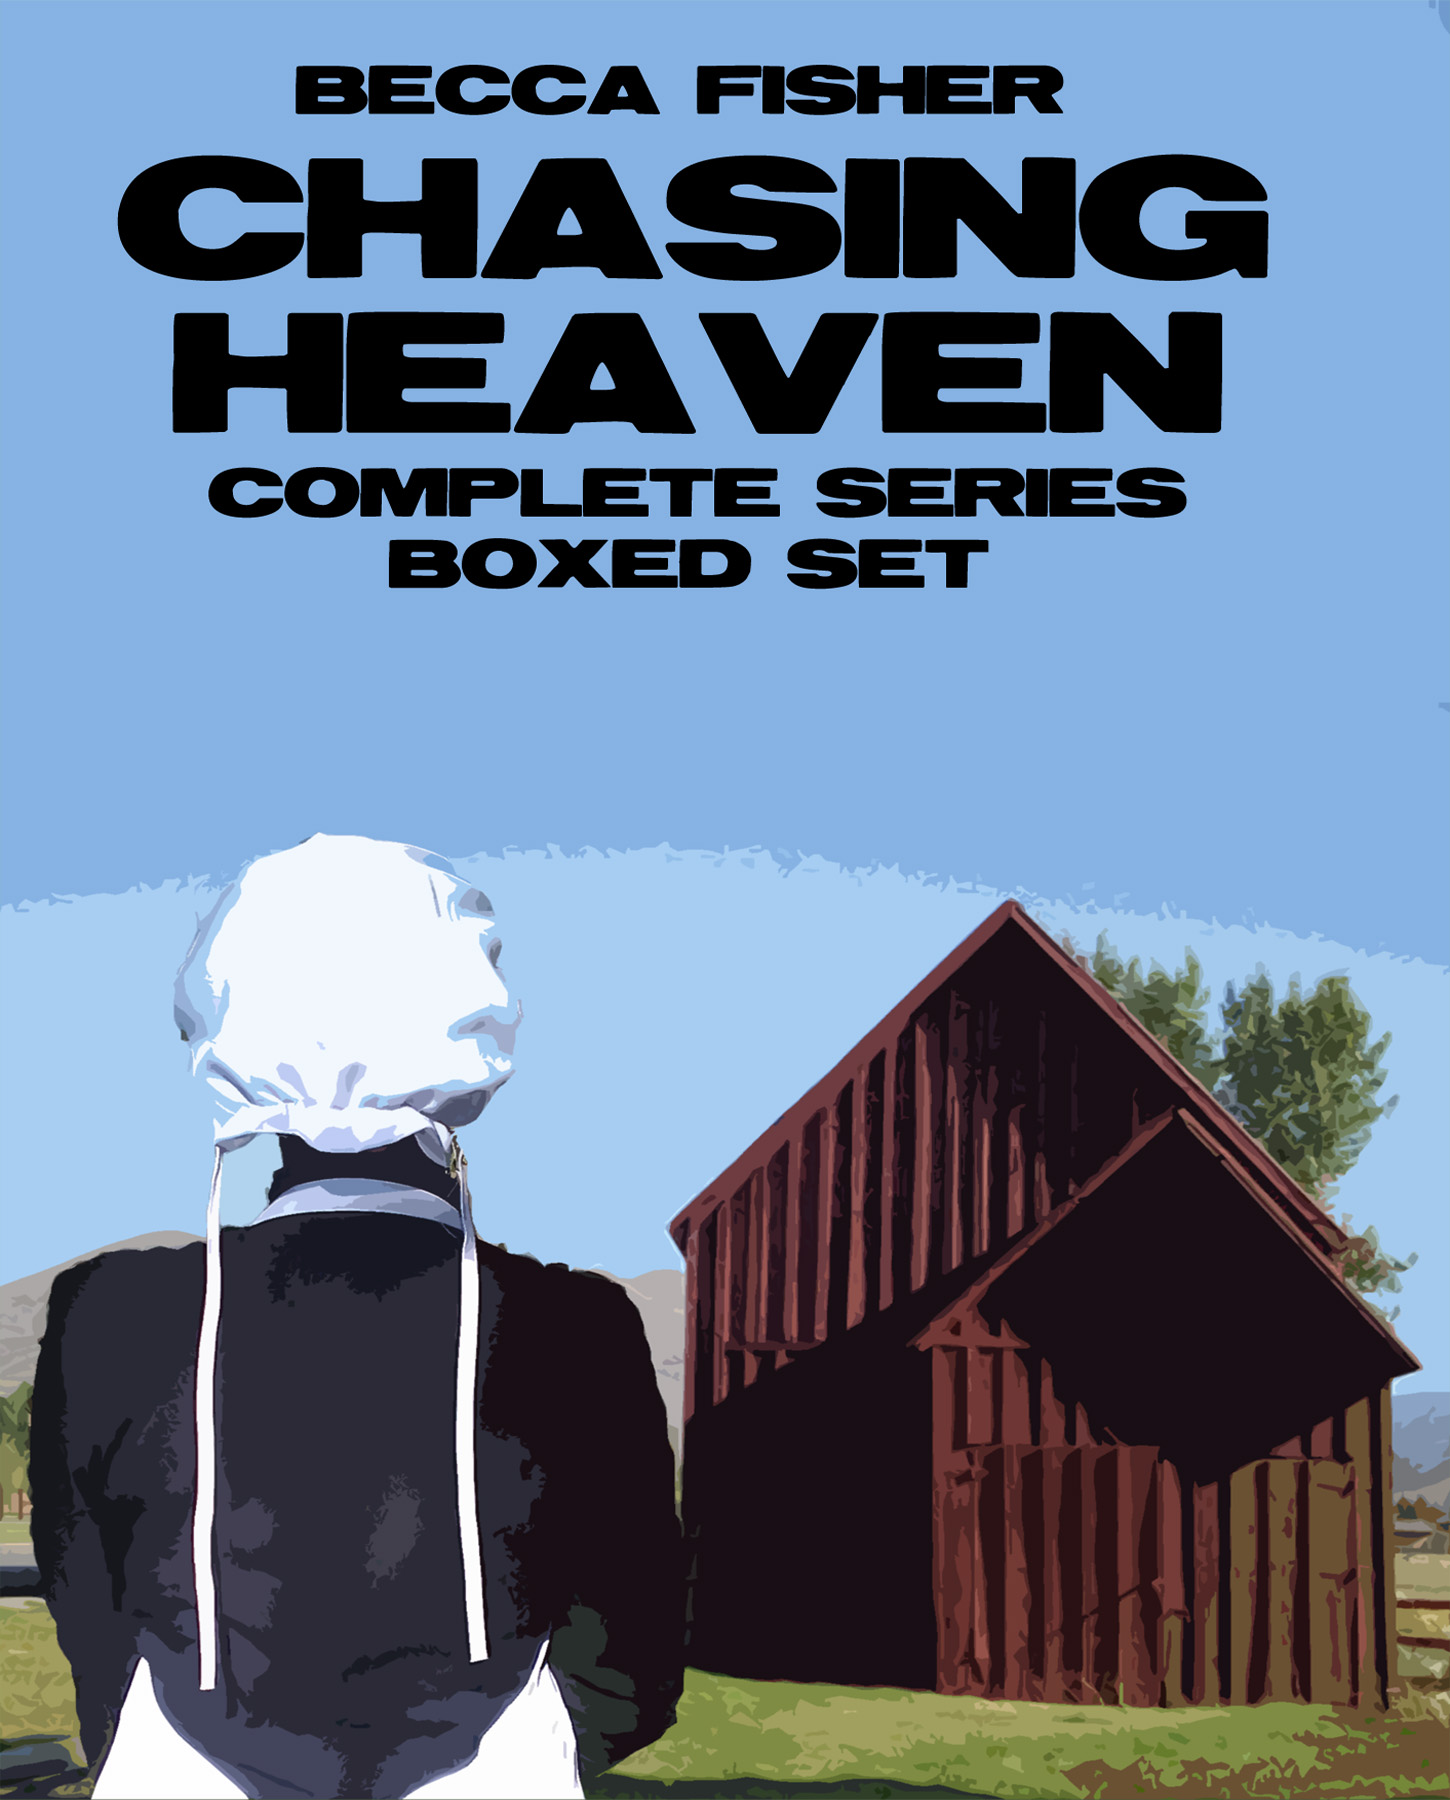 Becca Fisher - Chasing Heaven Complete Series Boxed Set